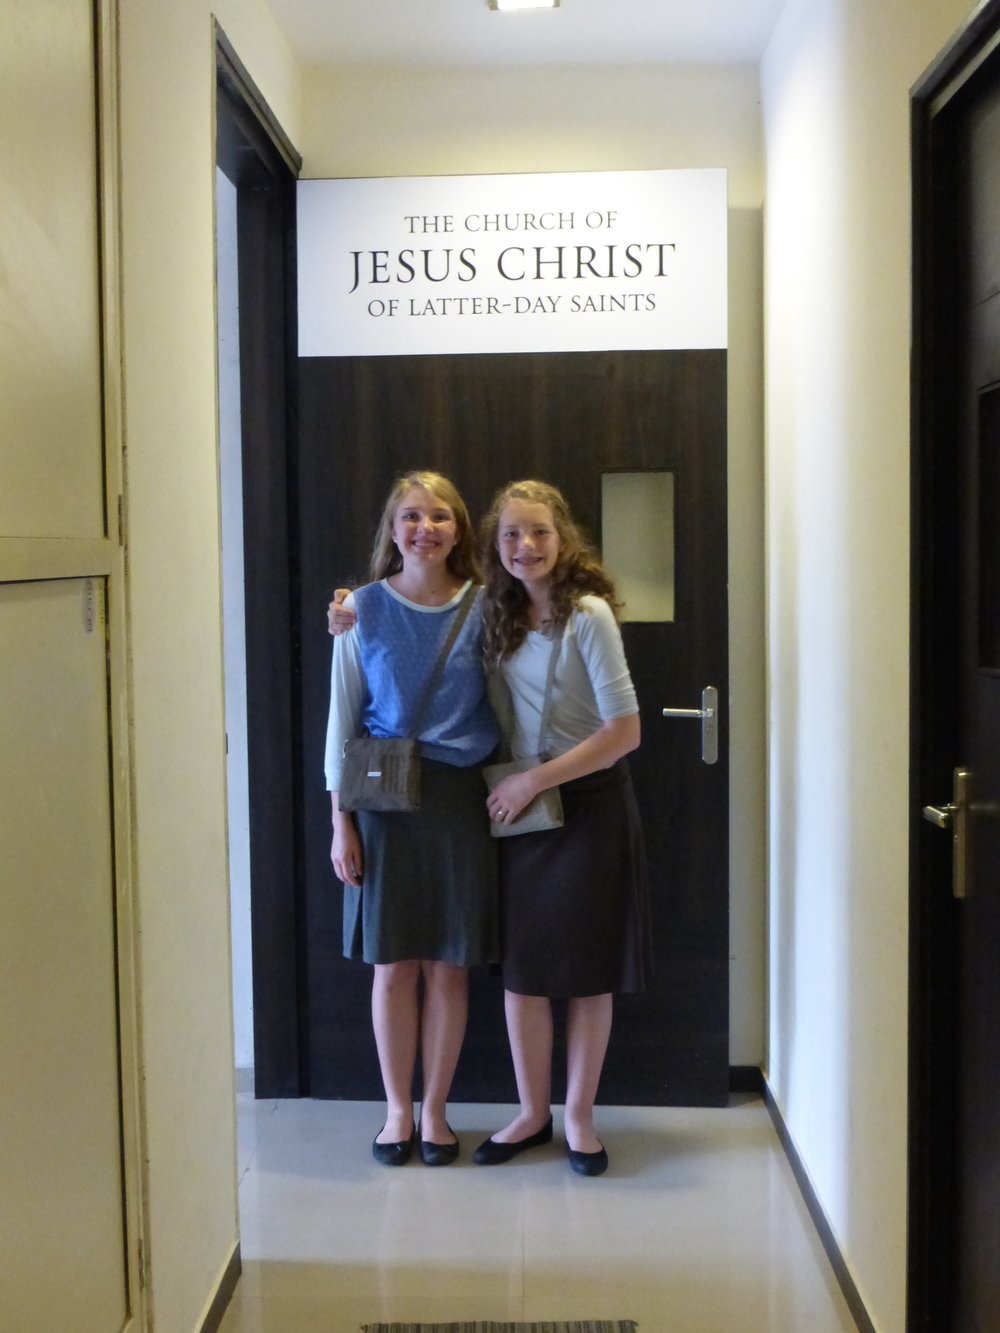 Rebecca & Camilla below the church sign on the door of their area of the building.